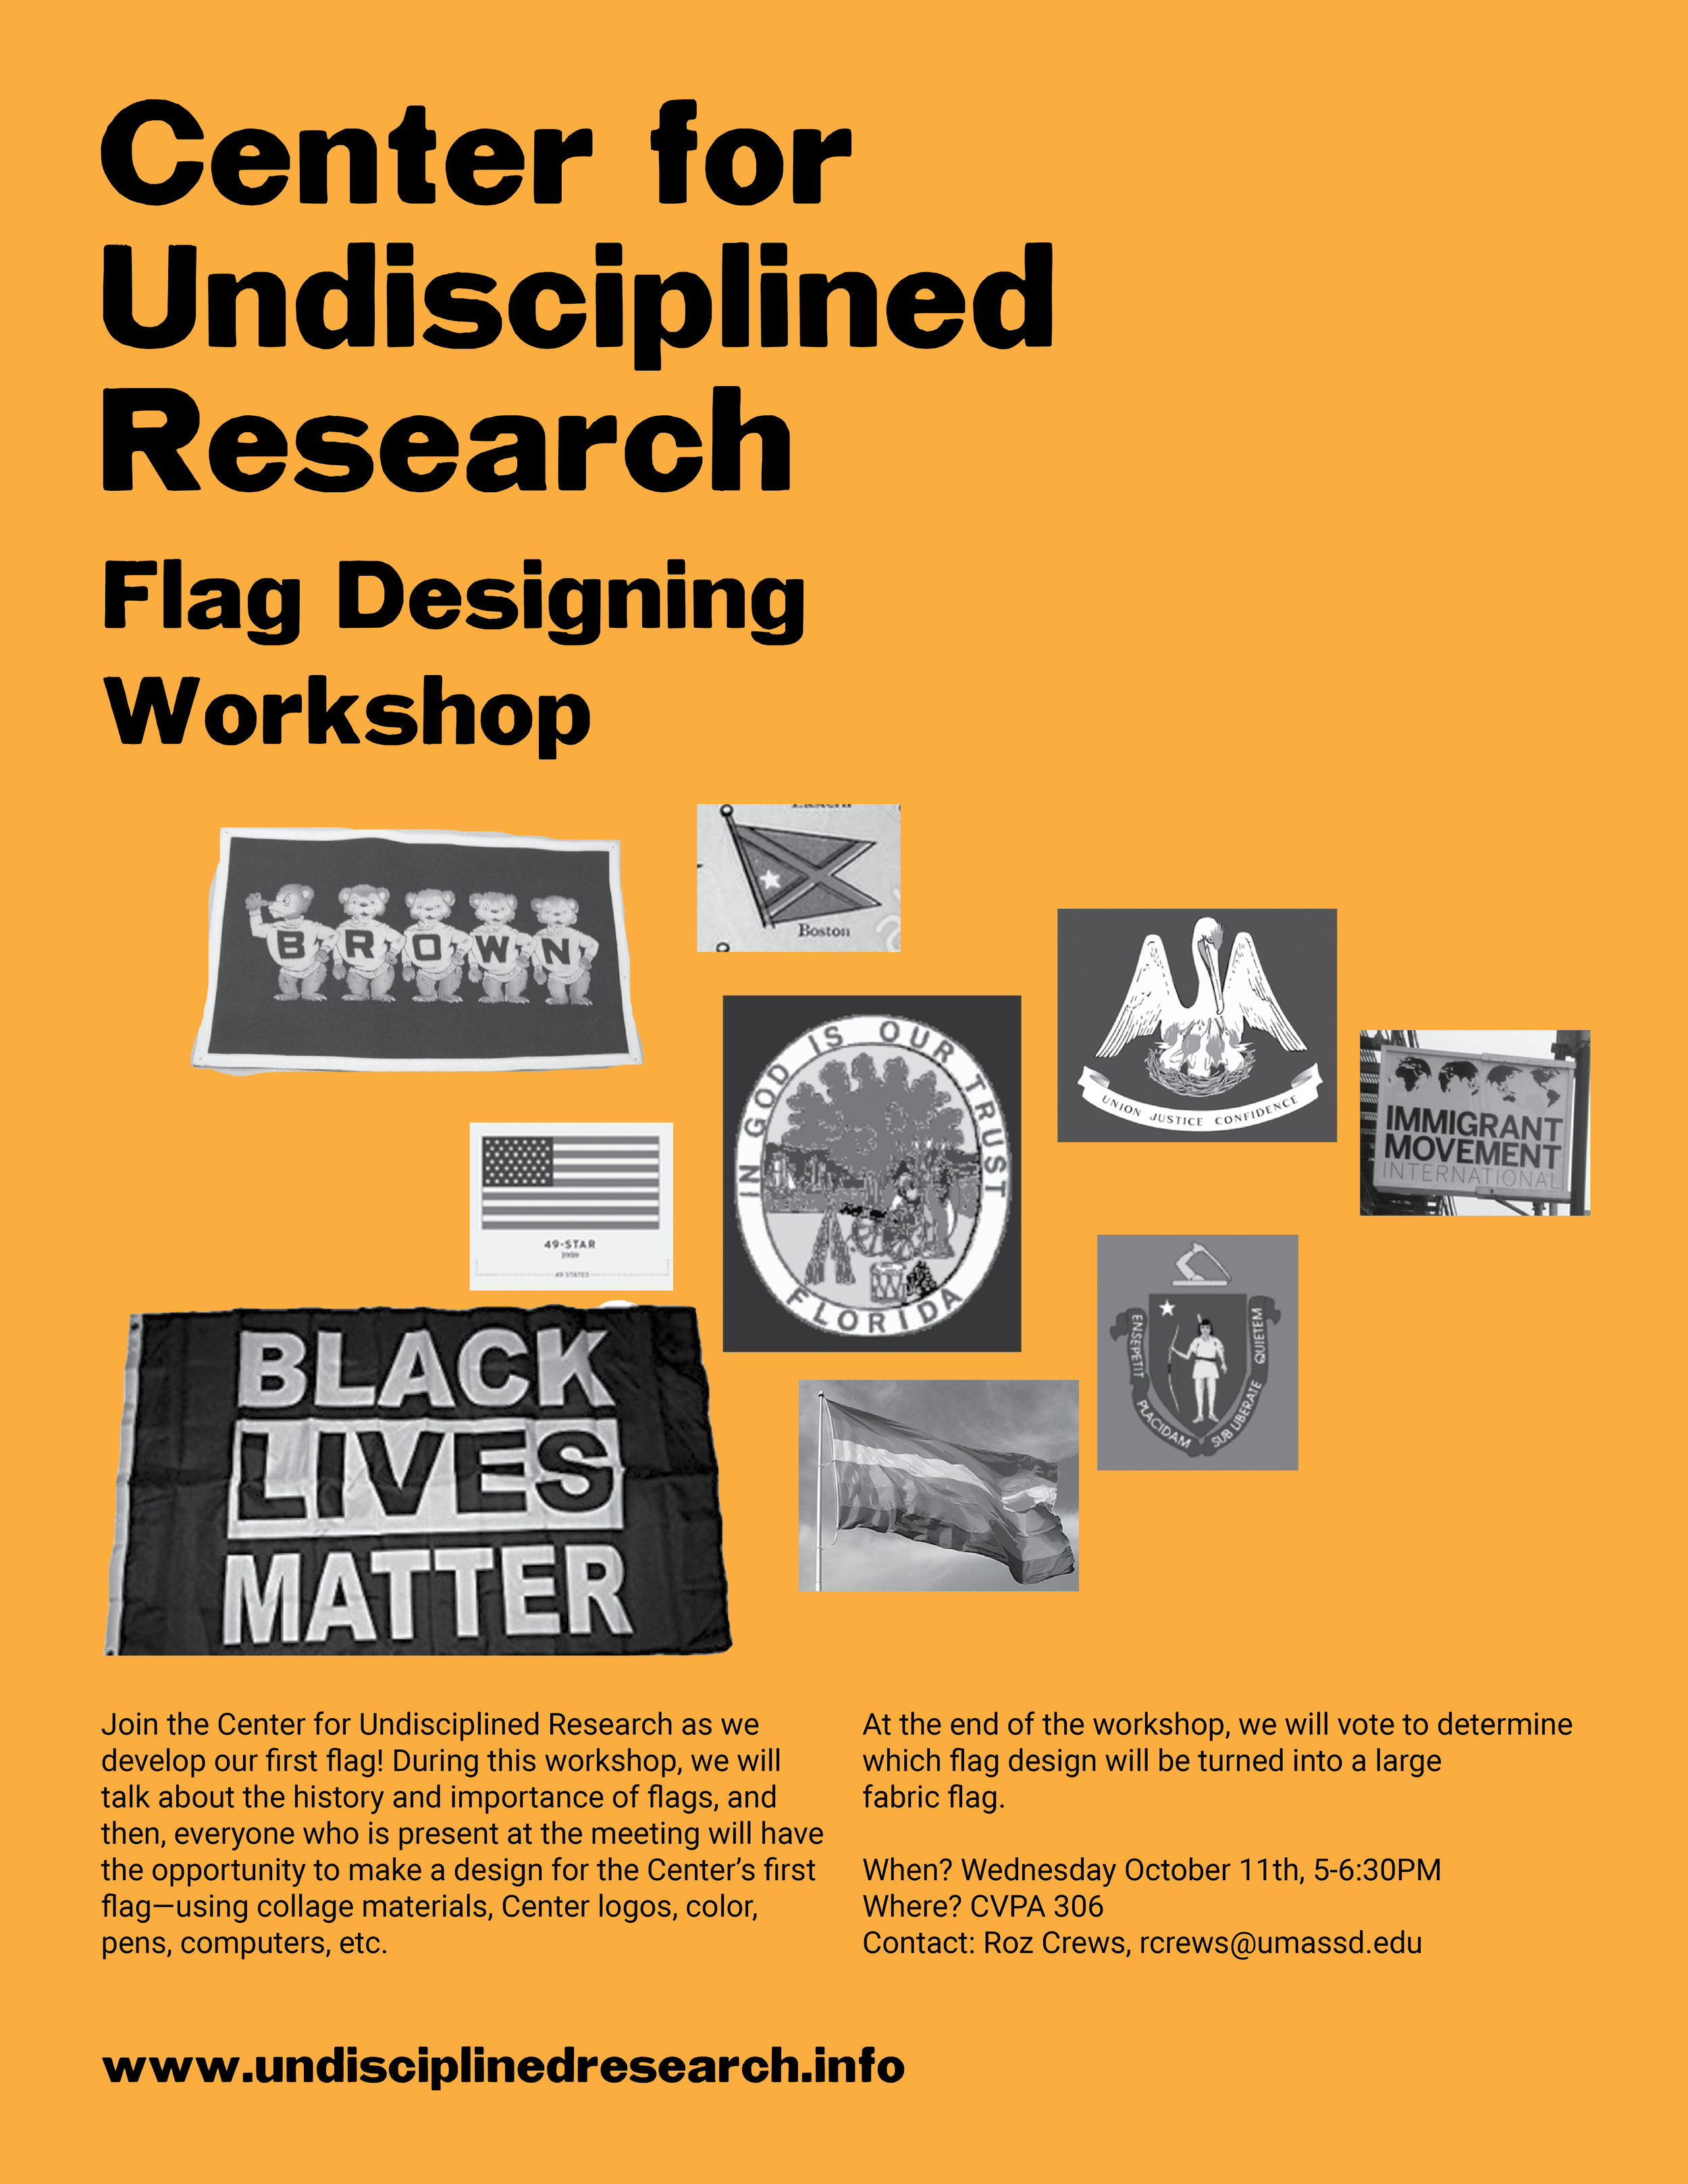 This Wednesday from 5-6:30PM you can join us in CVPA 306 for a flag designing workshop. At this workshop we will decide on the Center's first flag design.